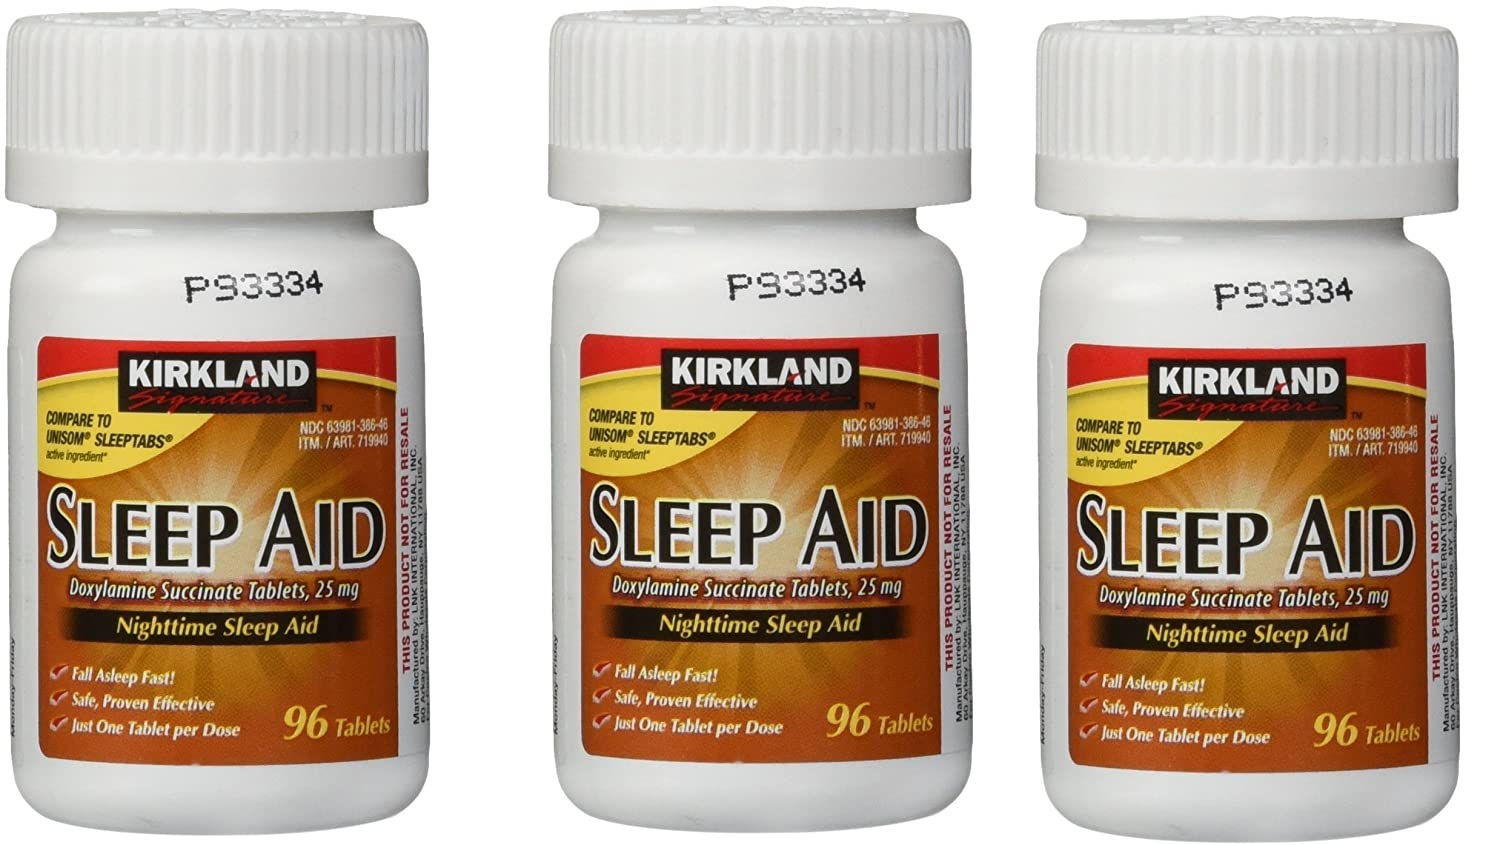 Amazon.com: Nighttime Aid 25mg, 3 Pack of 96 Tablets: Health & Personal Care